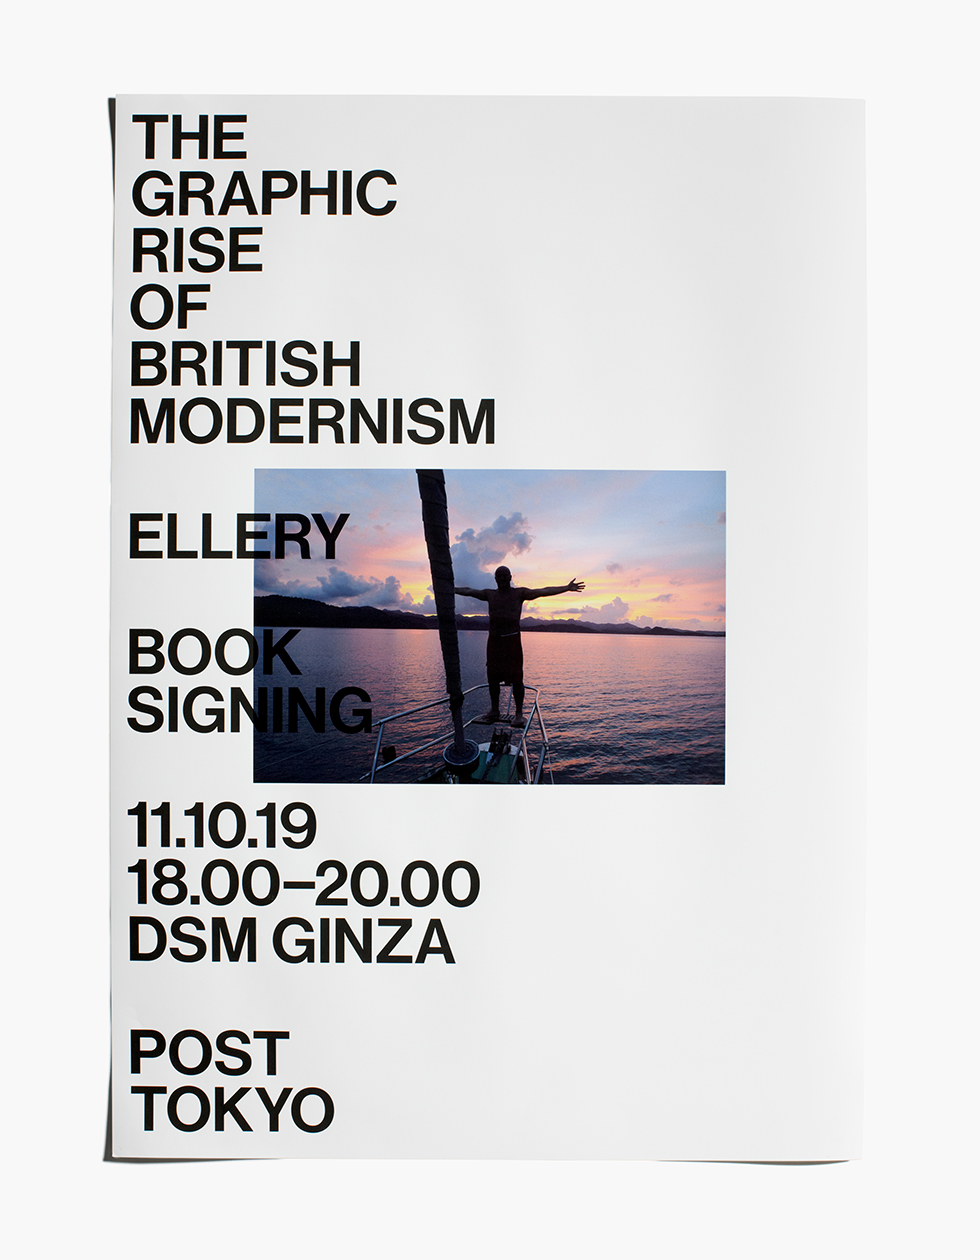 Jonathan Ellery, The Graphic Rise of British Modernism, Book Signing, Post, Tokyo, Dover Street Market Ginza, BookJonathan Ellery, The Graphic Rise of British Modernism,2019